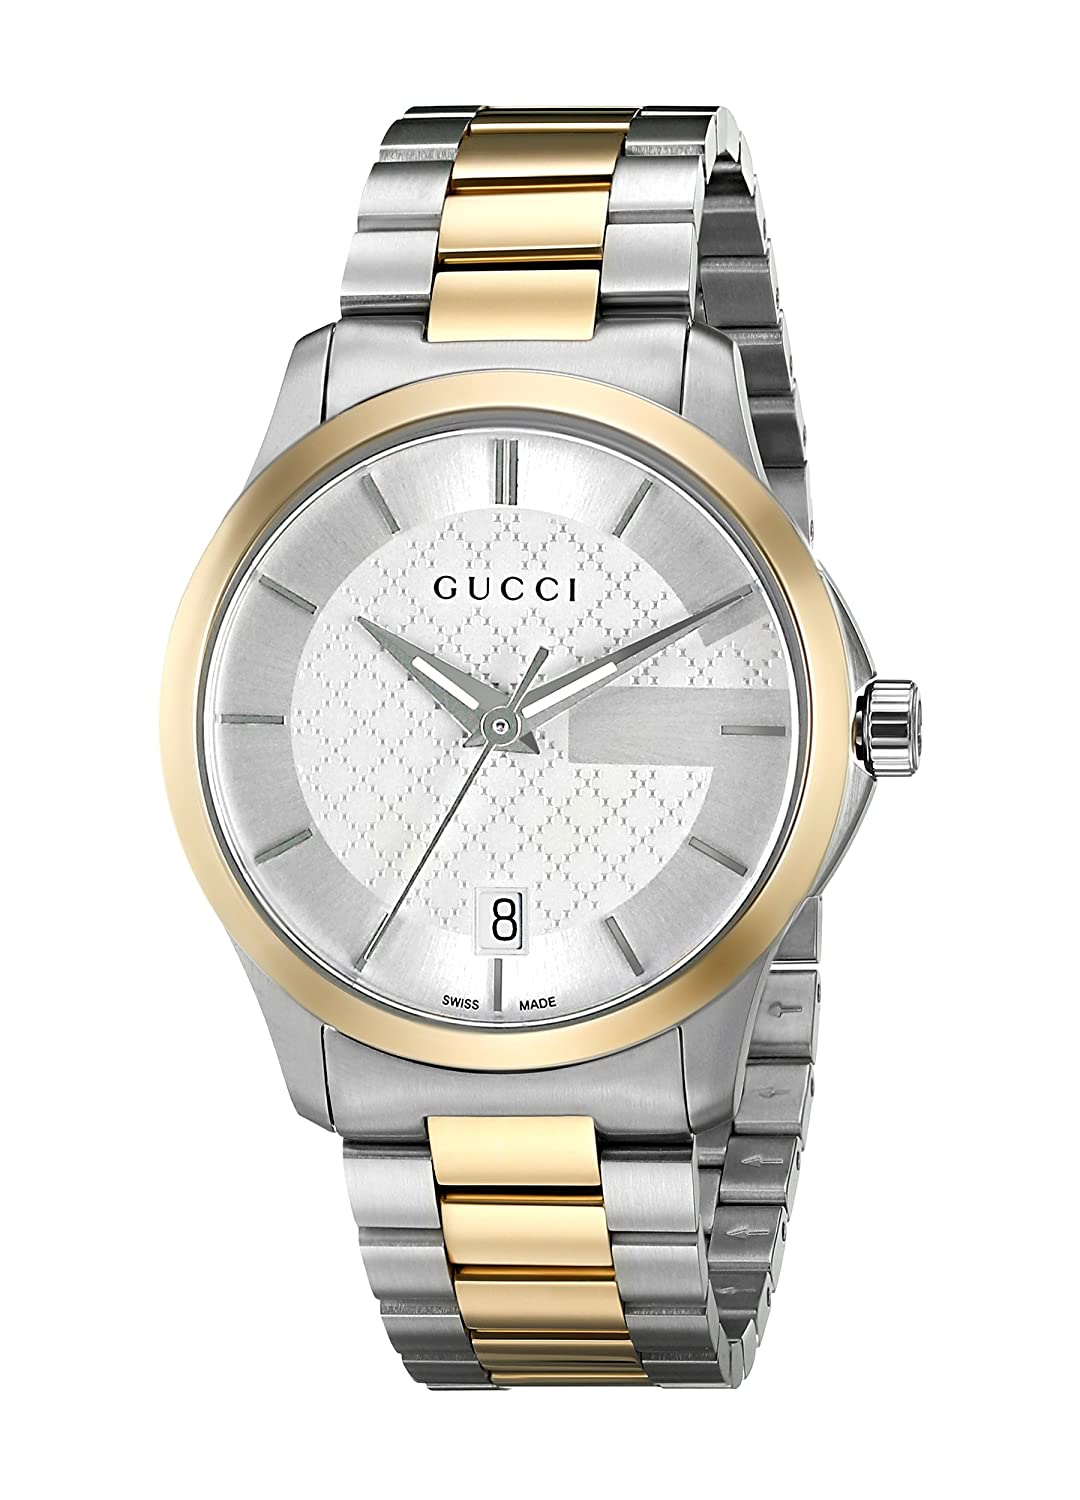 7bc86078aba Amazon.com  Gucci Swiss Quartz Stainless Steel Dress Two Tone Men s Watch(Model   YA126450)  Gucci  Watches